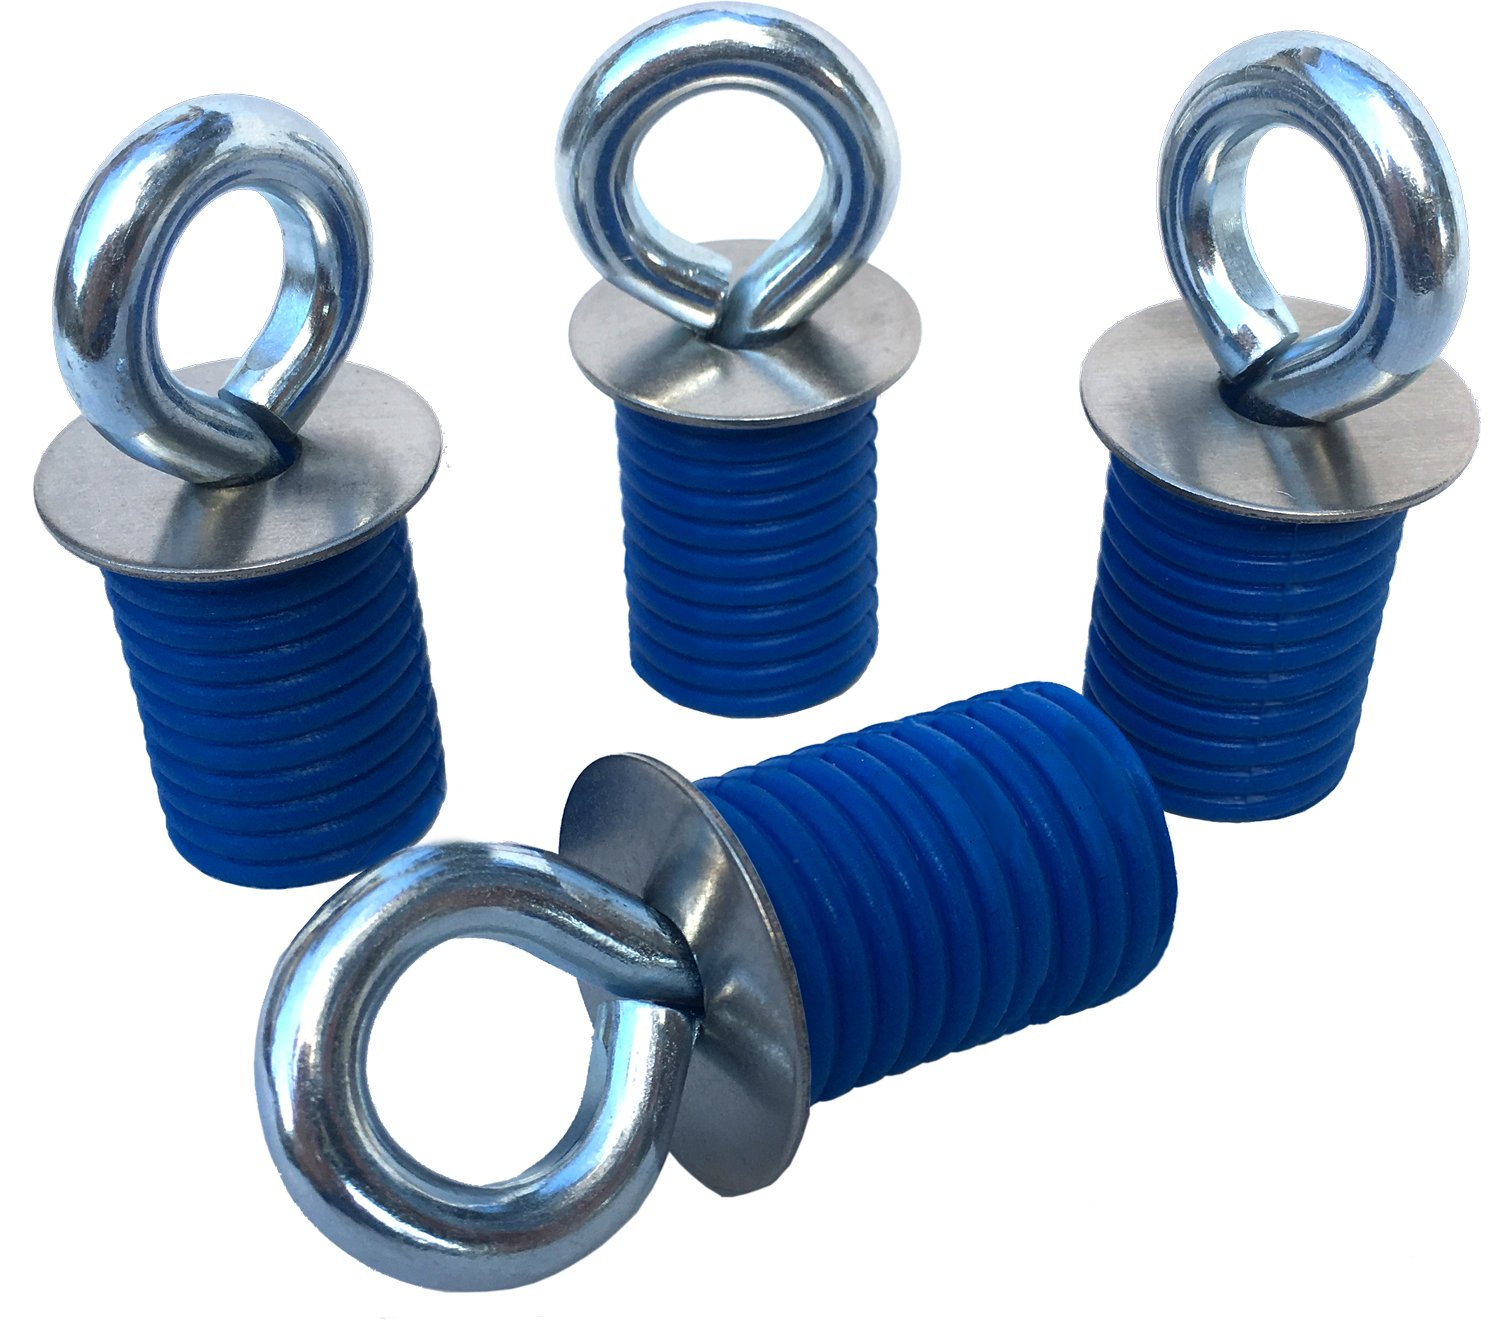 Polaris Lock & Ride ATV Tie Down Anchors for RZR, Sportsman and Ace - Set of 4 Lock and Ride Type Anchors by GripPRO ATV Anchors - THESE DO NOT FIT RANGER MODELS